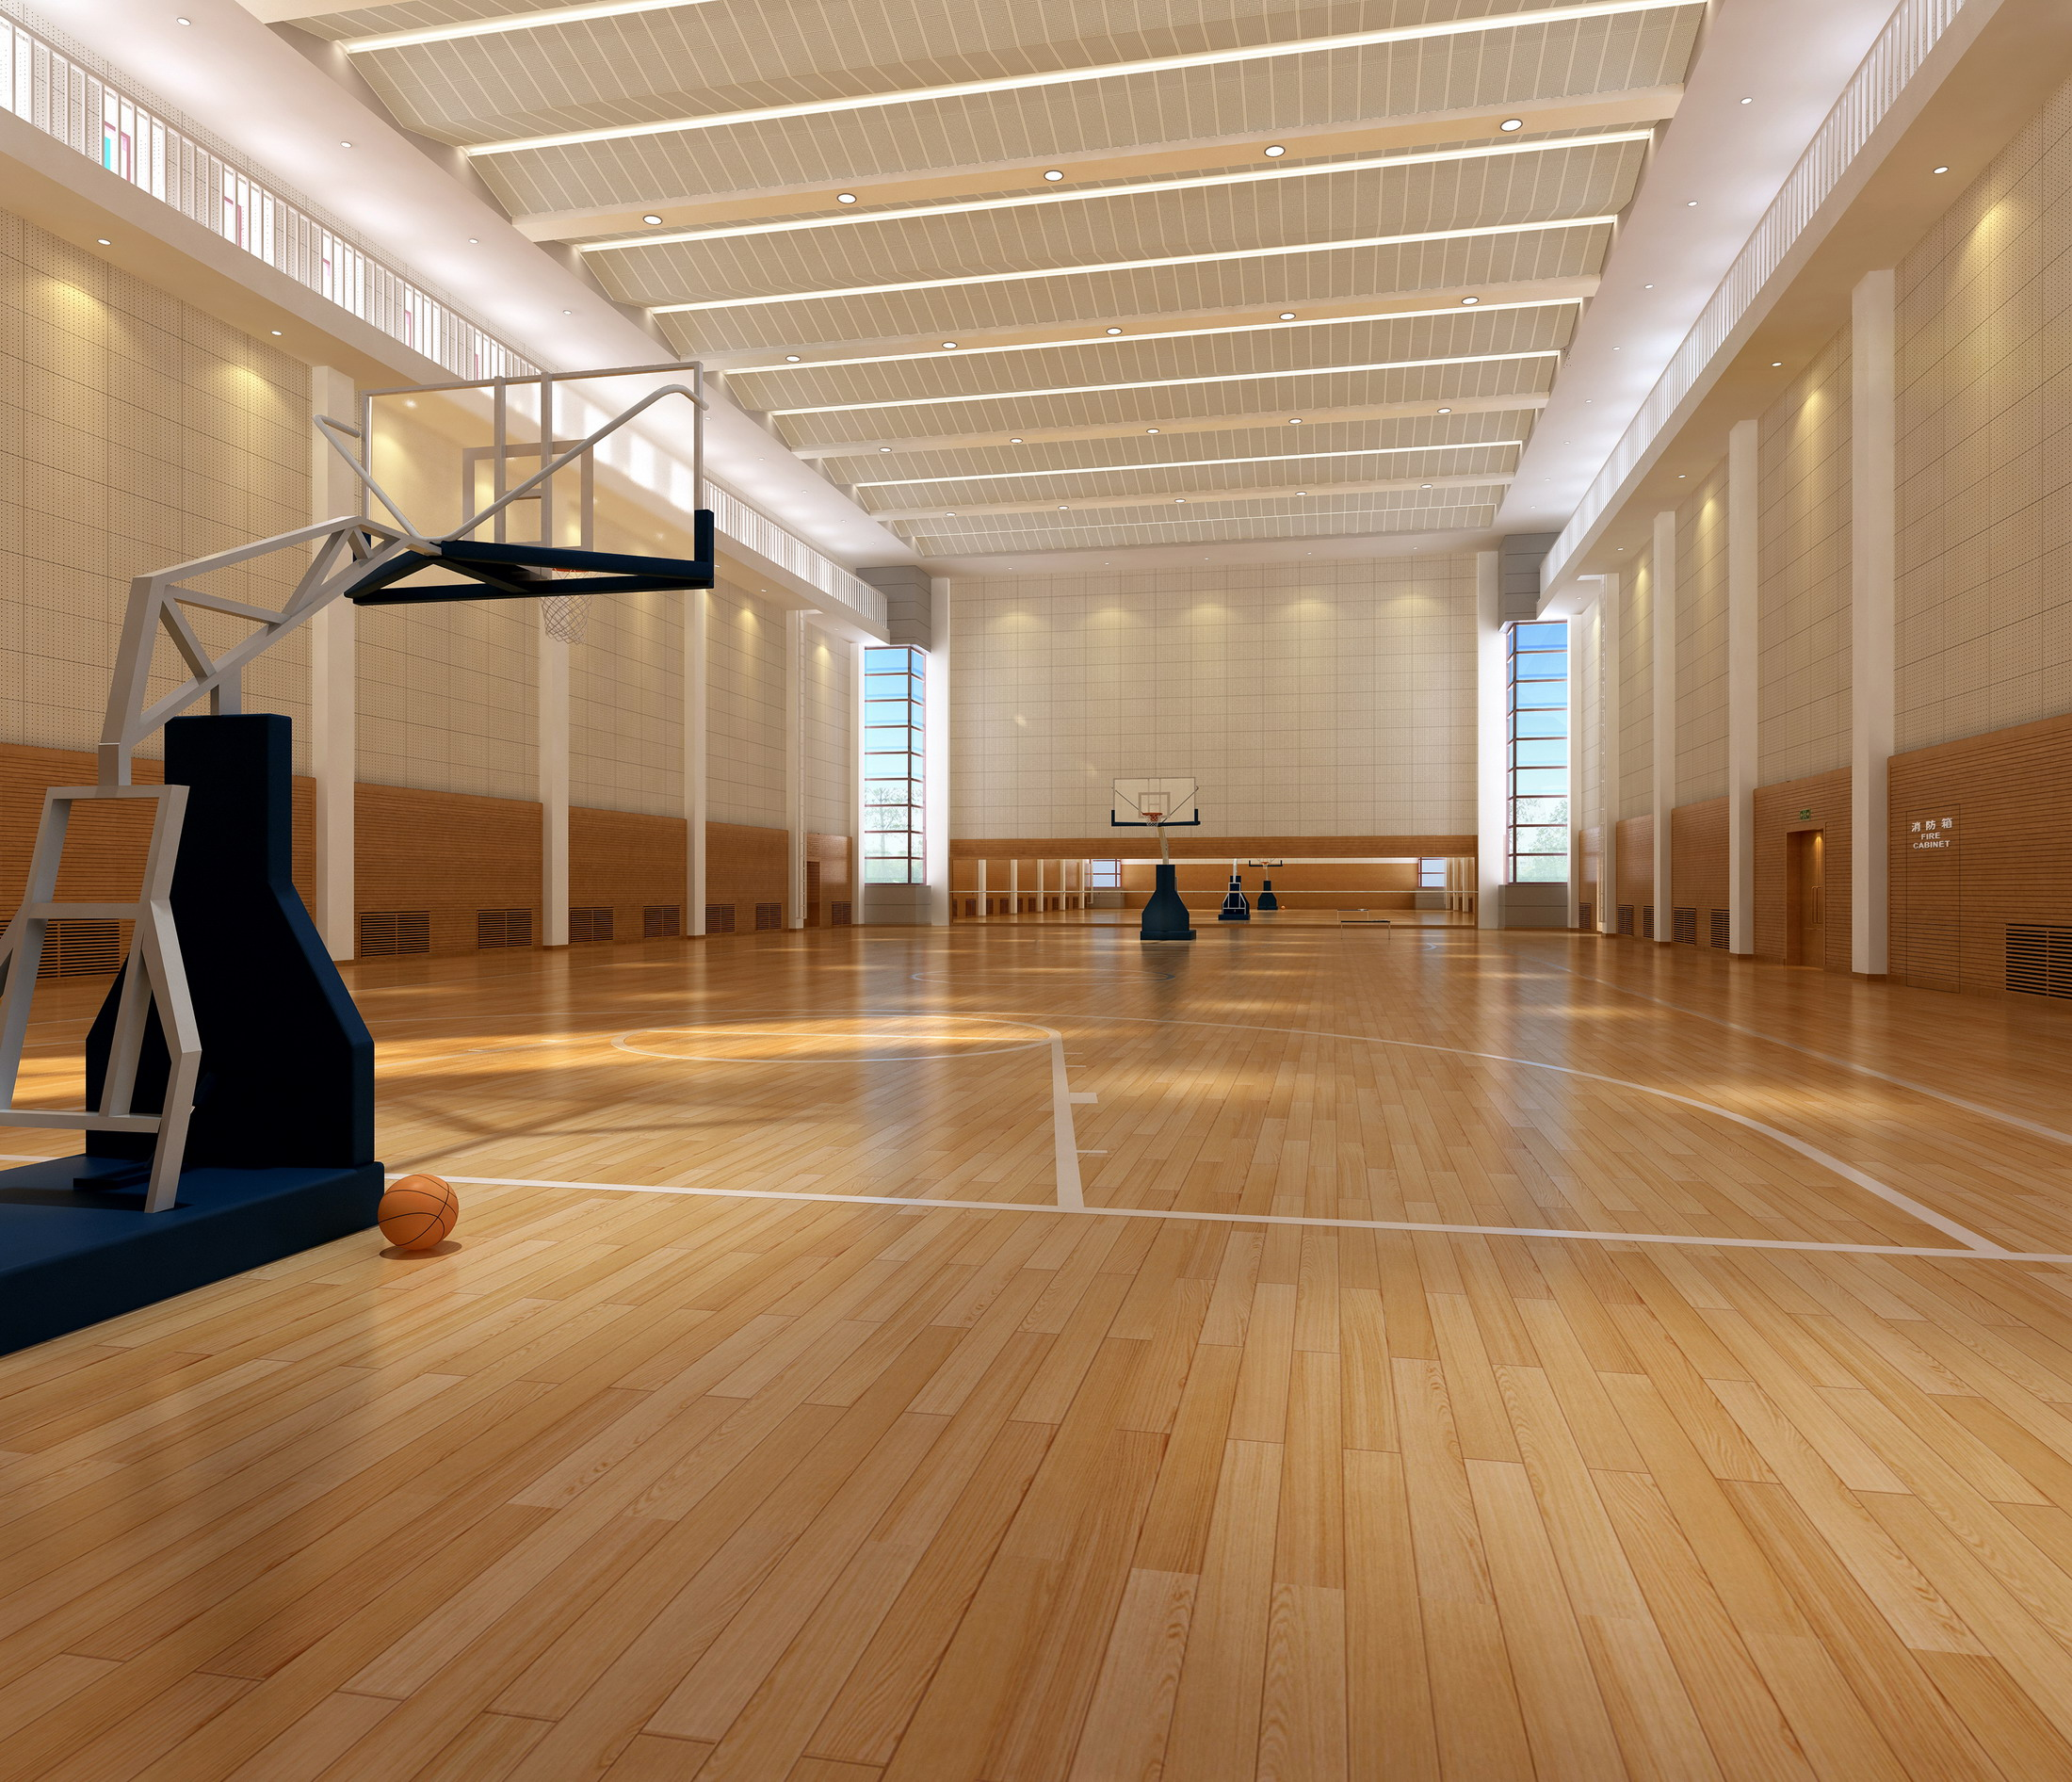 basketbal gymnázium aréna 002 3d model max 138832